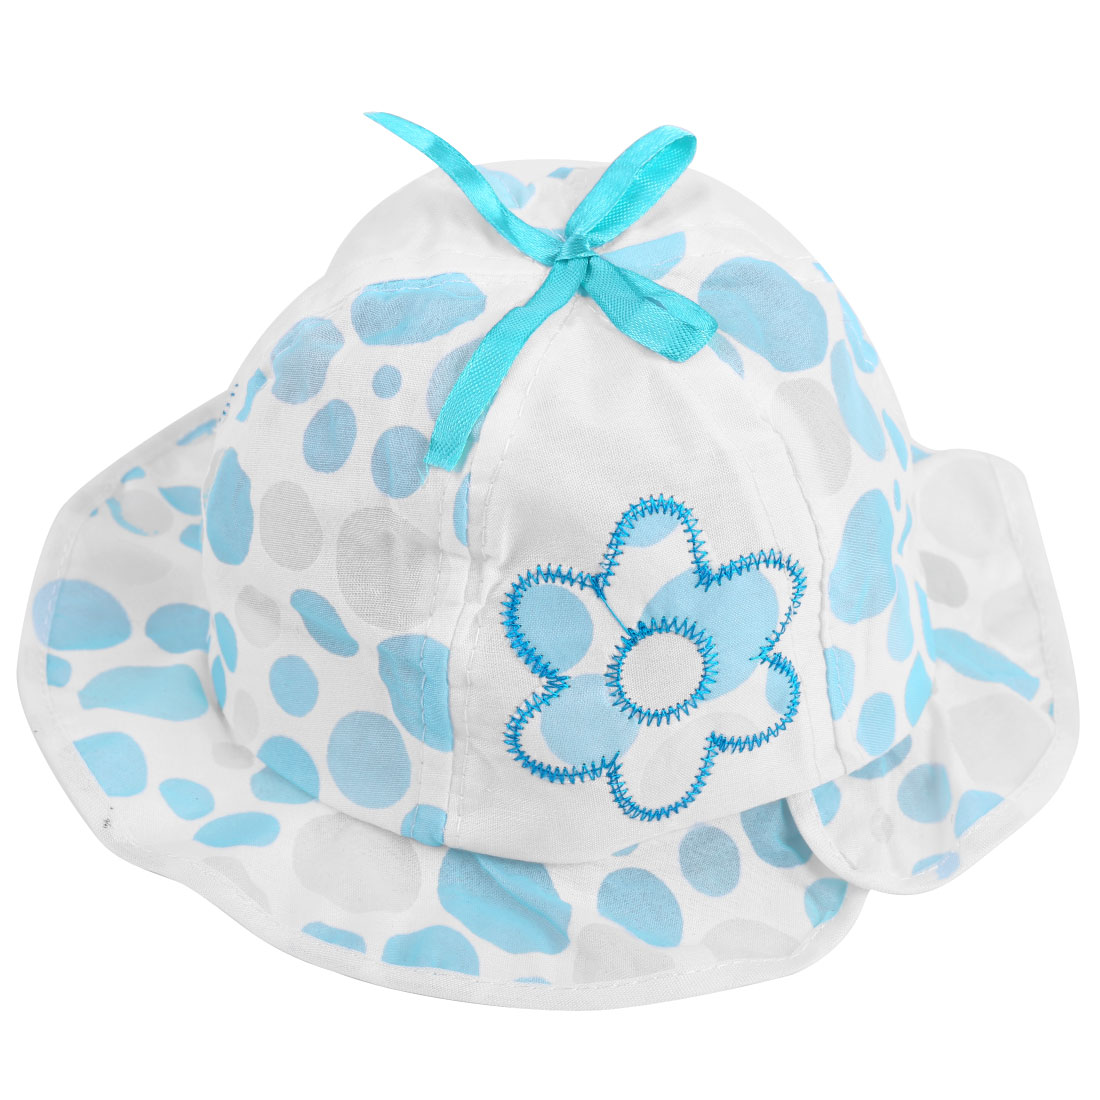 Baby Girls Chic Elastic Neck Strap Design Bowknot Decor Baby Blue Cotton Hat